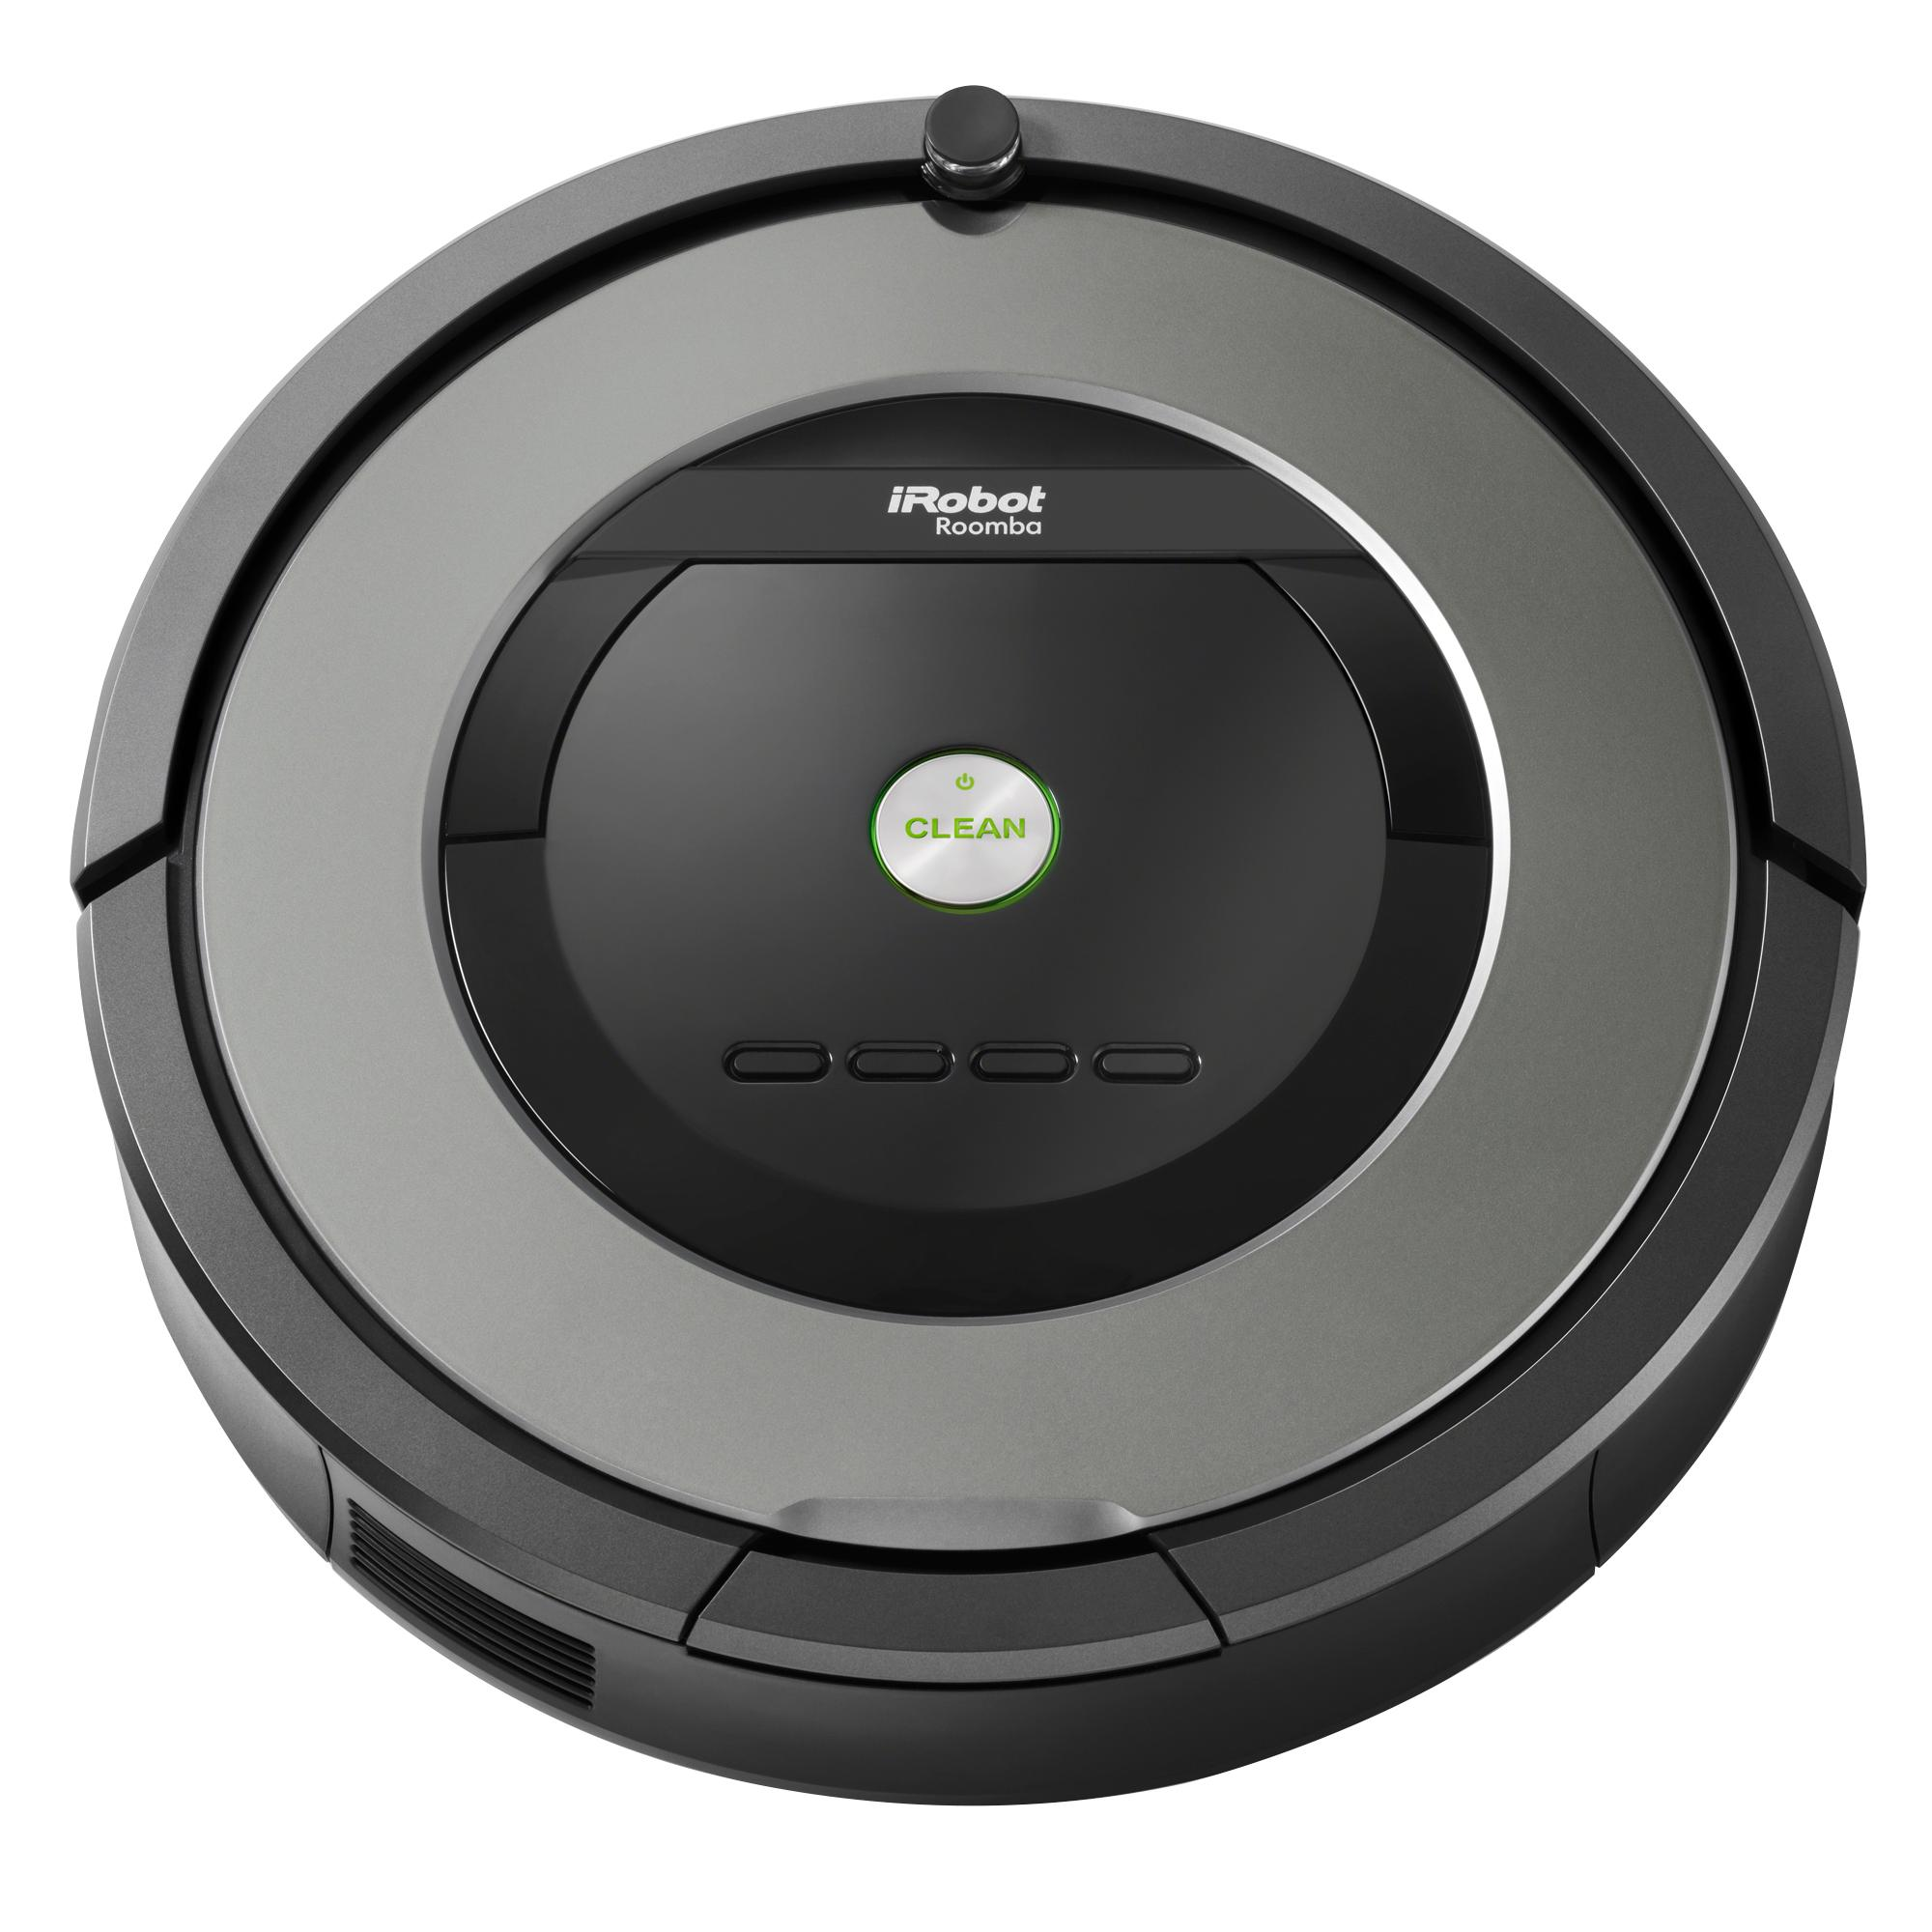 robotic bin cleaner power release robot review smart of contains gadgeteer vacuum bumper function button floor dust ilife the and top